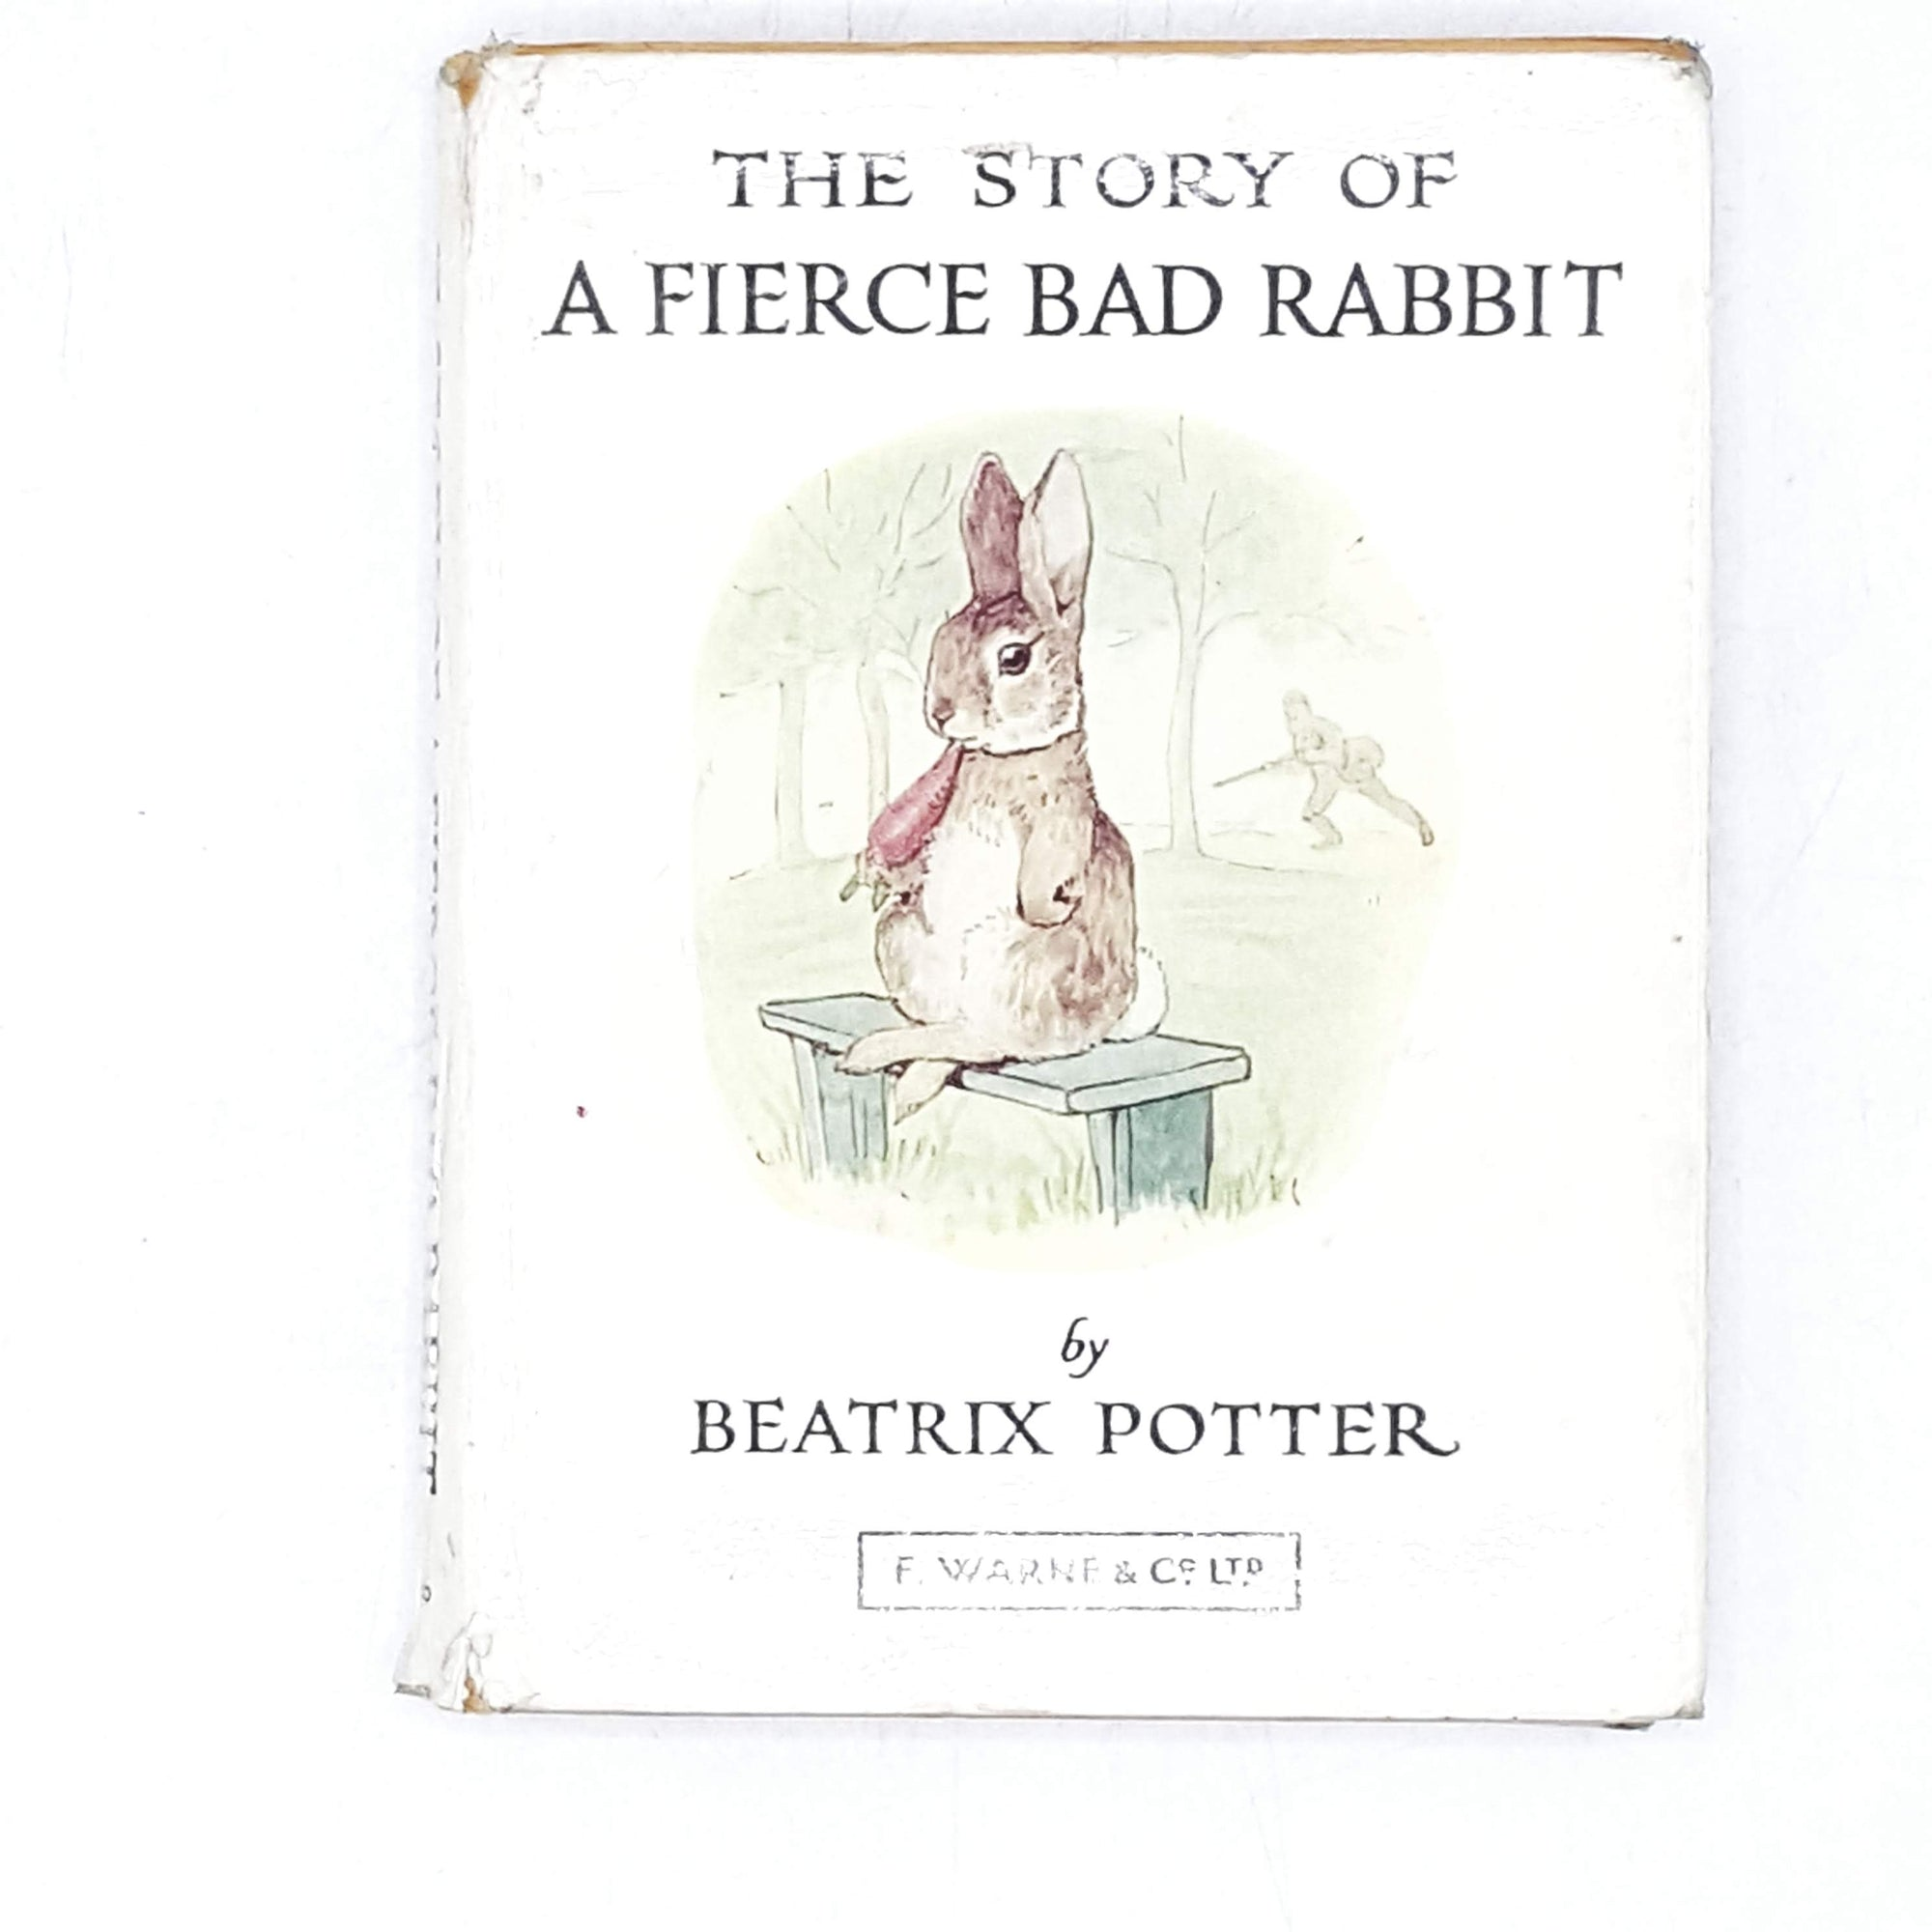 Beatrix Potter's The Story of a Fierce Bad Rabbit